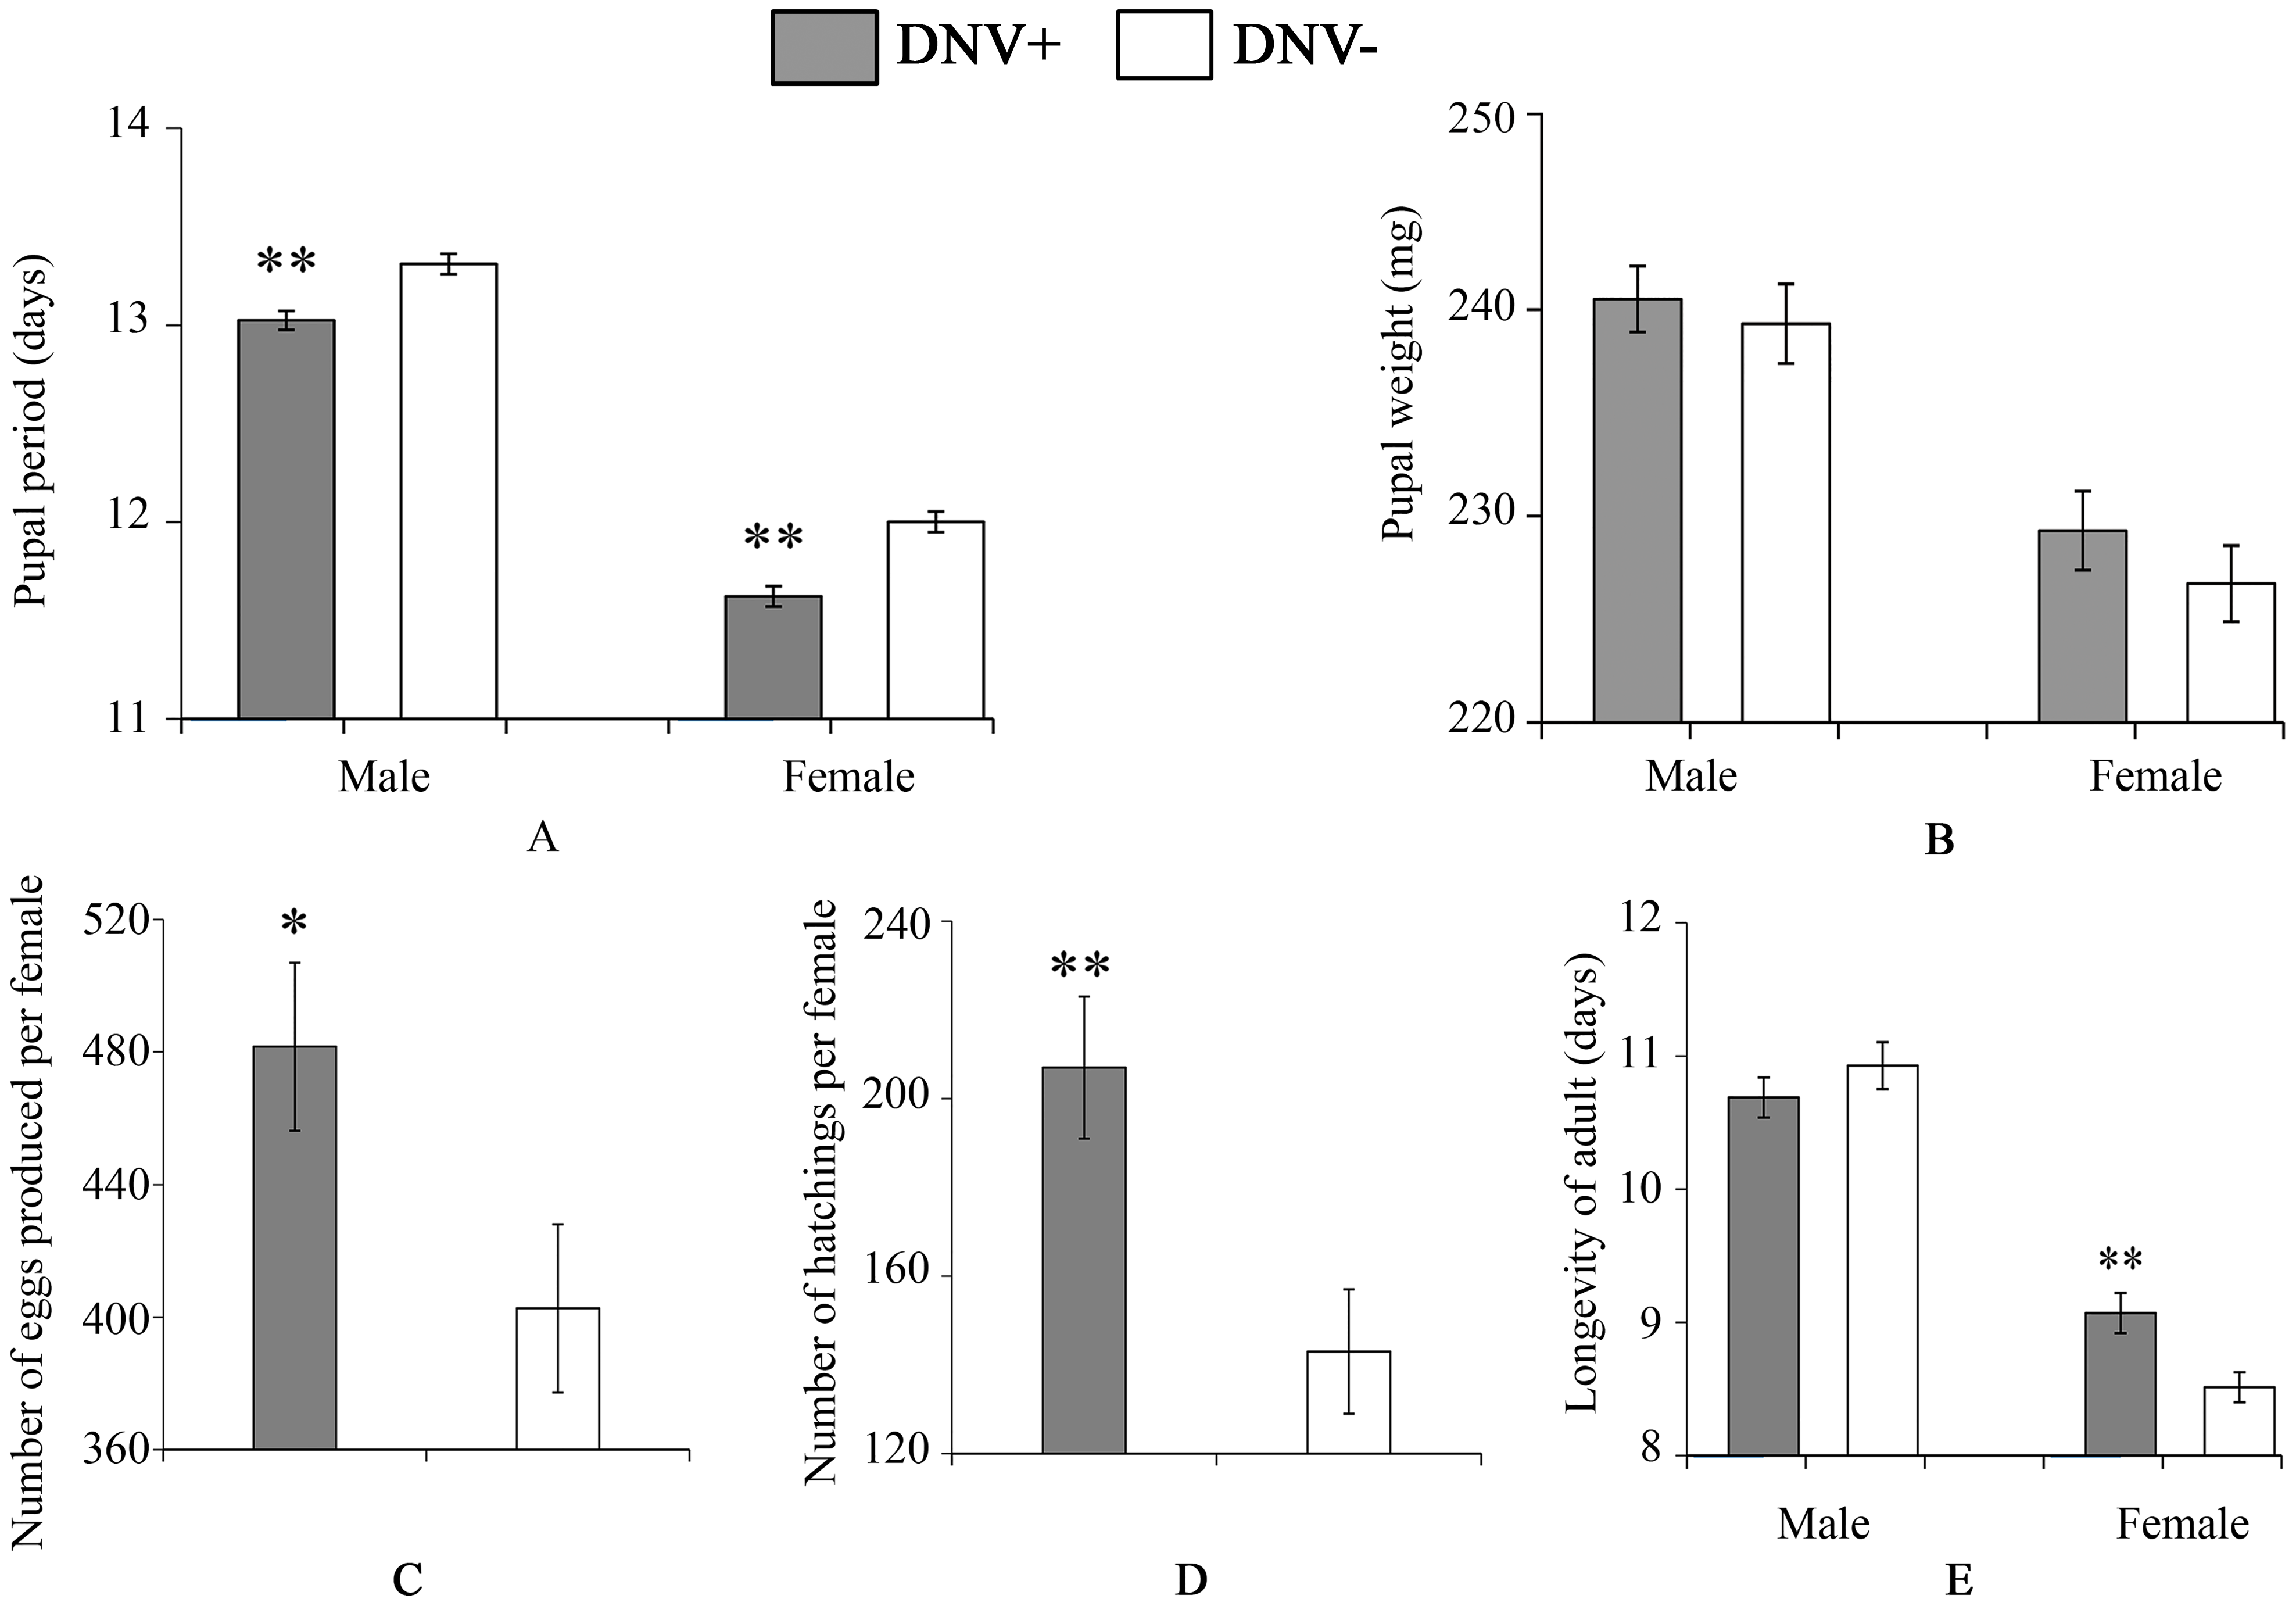 Pupal and adult life-history parameters of DNV− and DNV+ cotton bollworms.